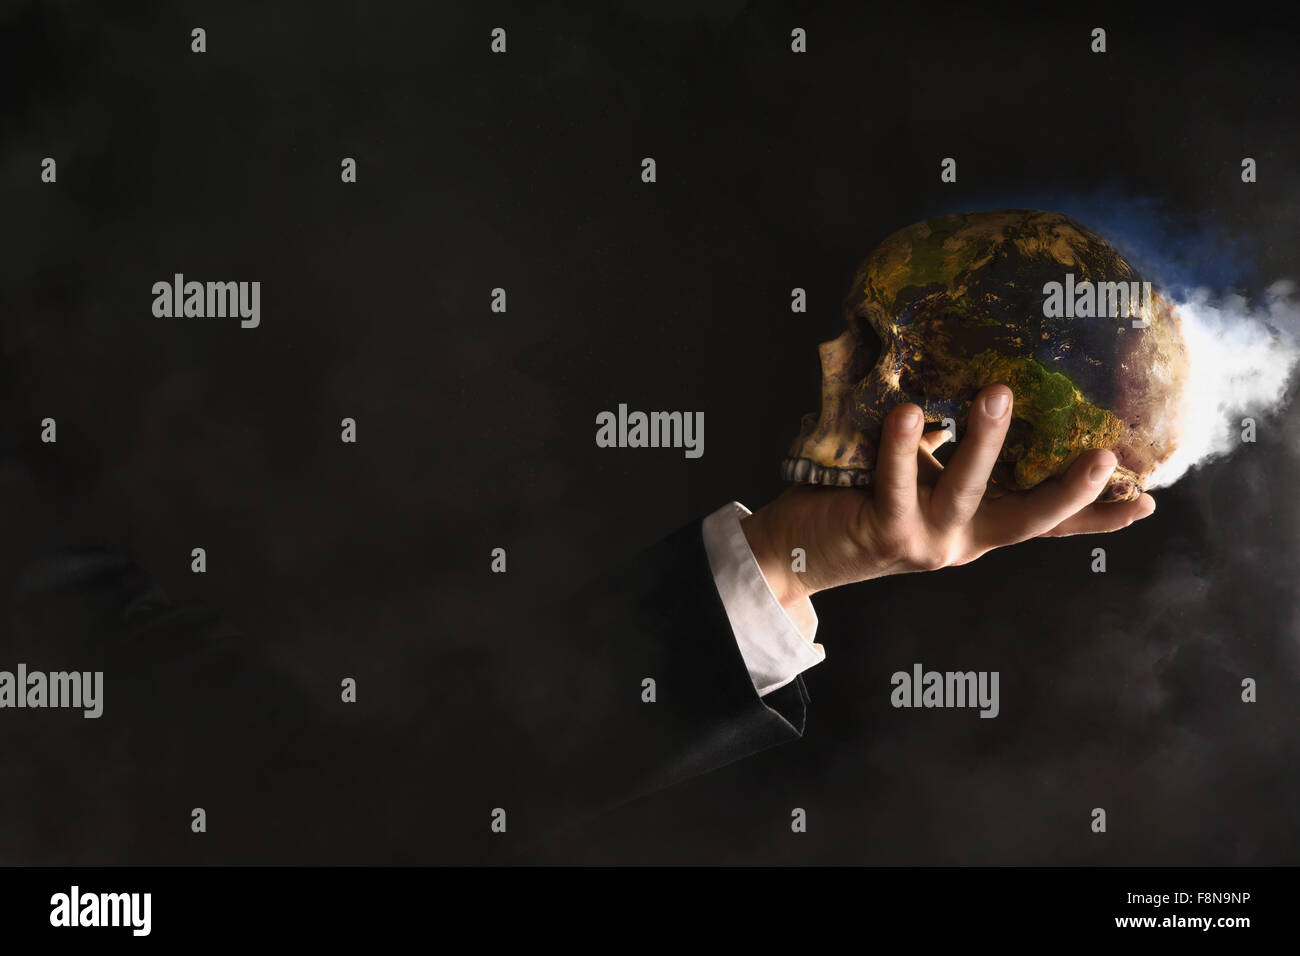 Businessman holding a burning globe while they changed into a skull - Stock Image